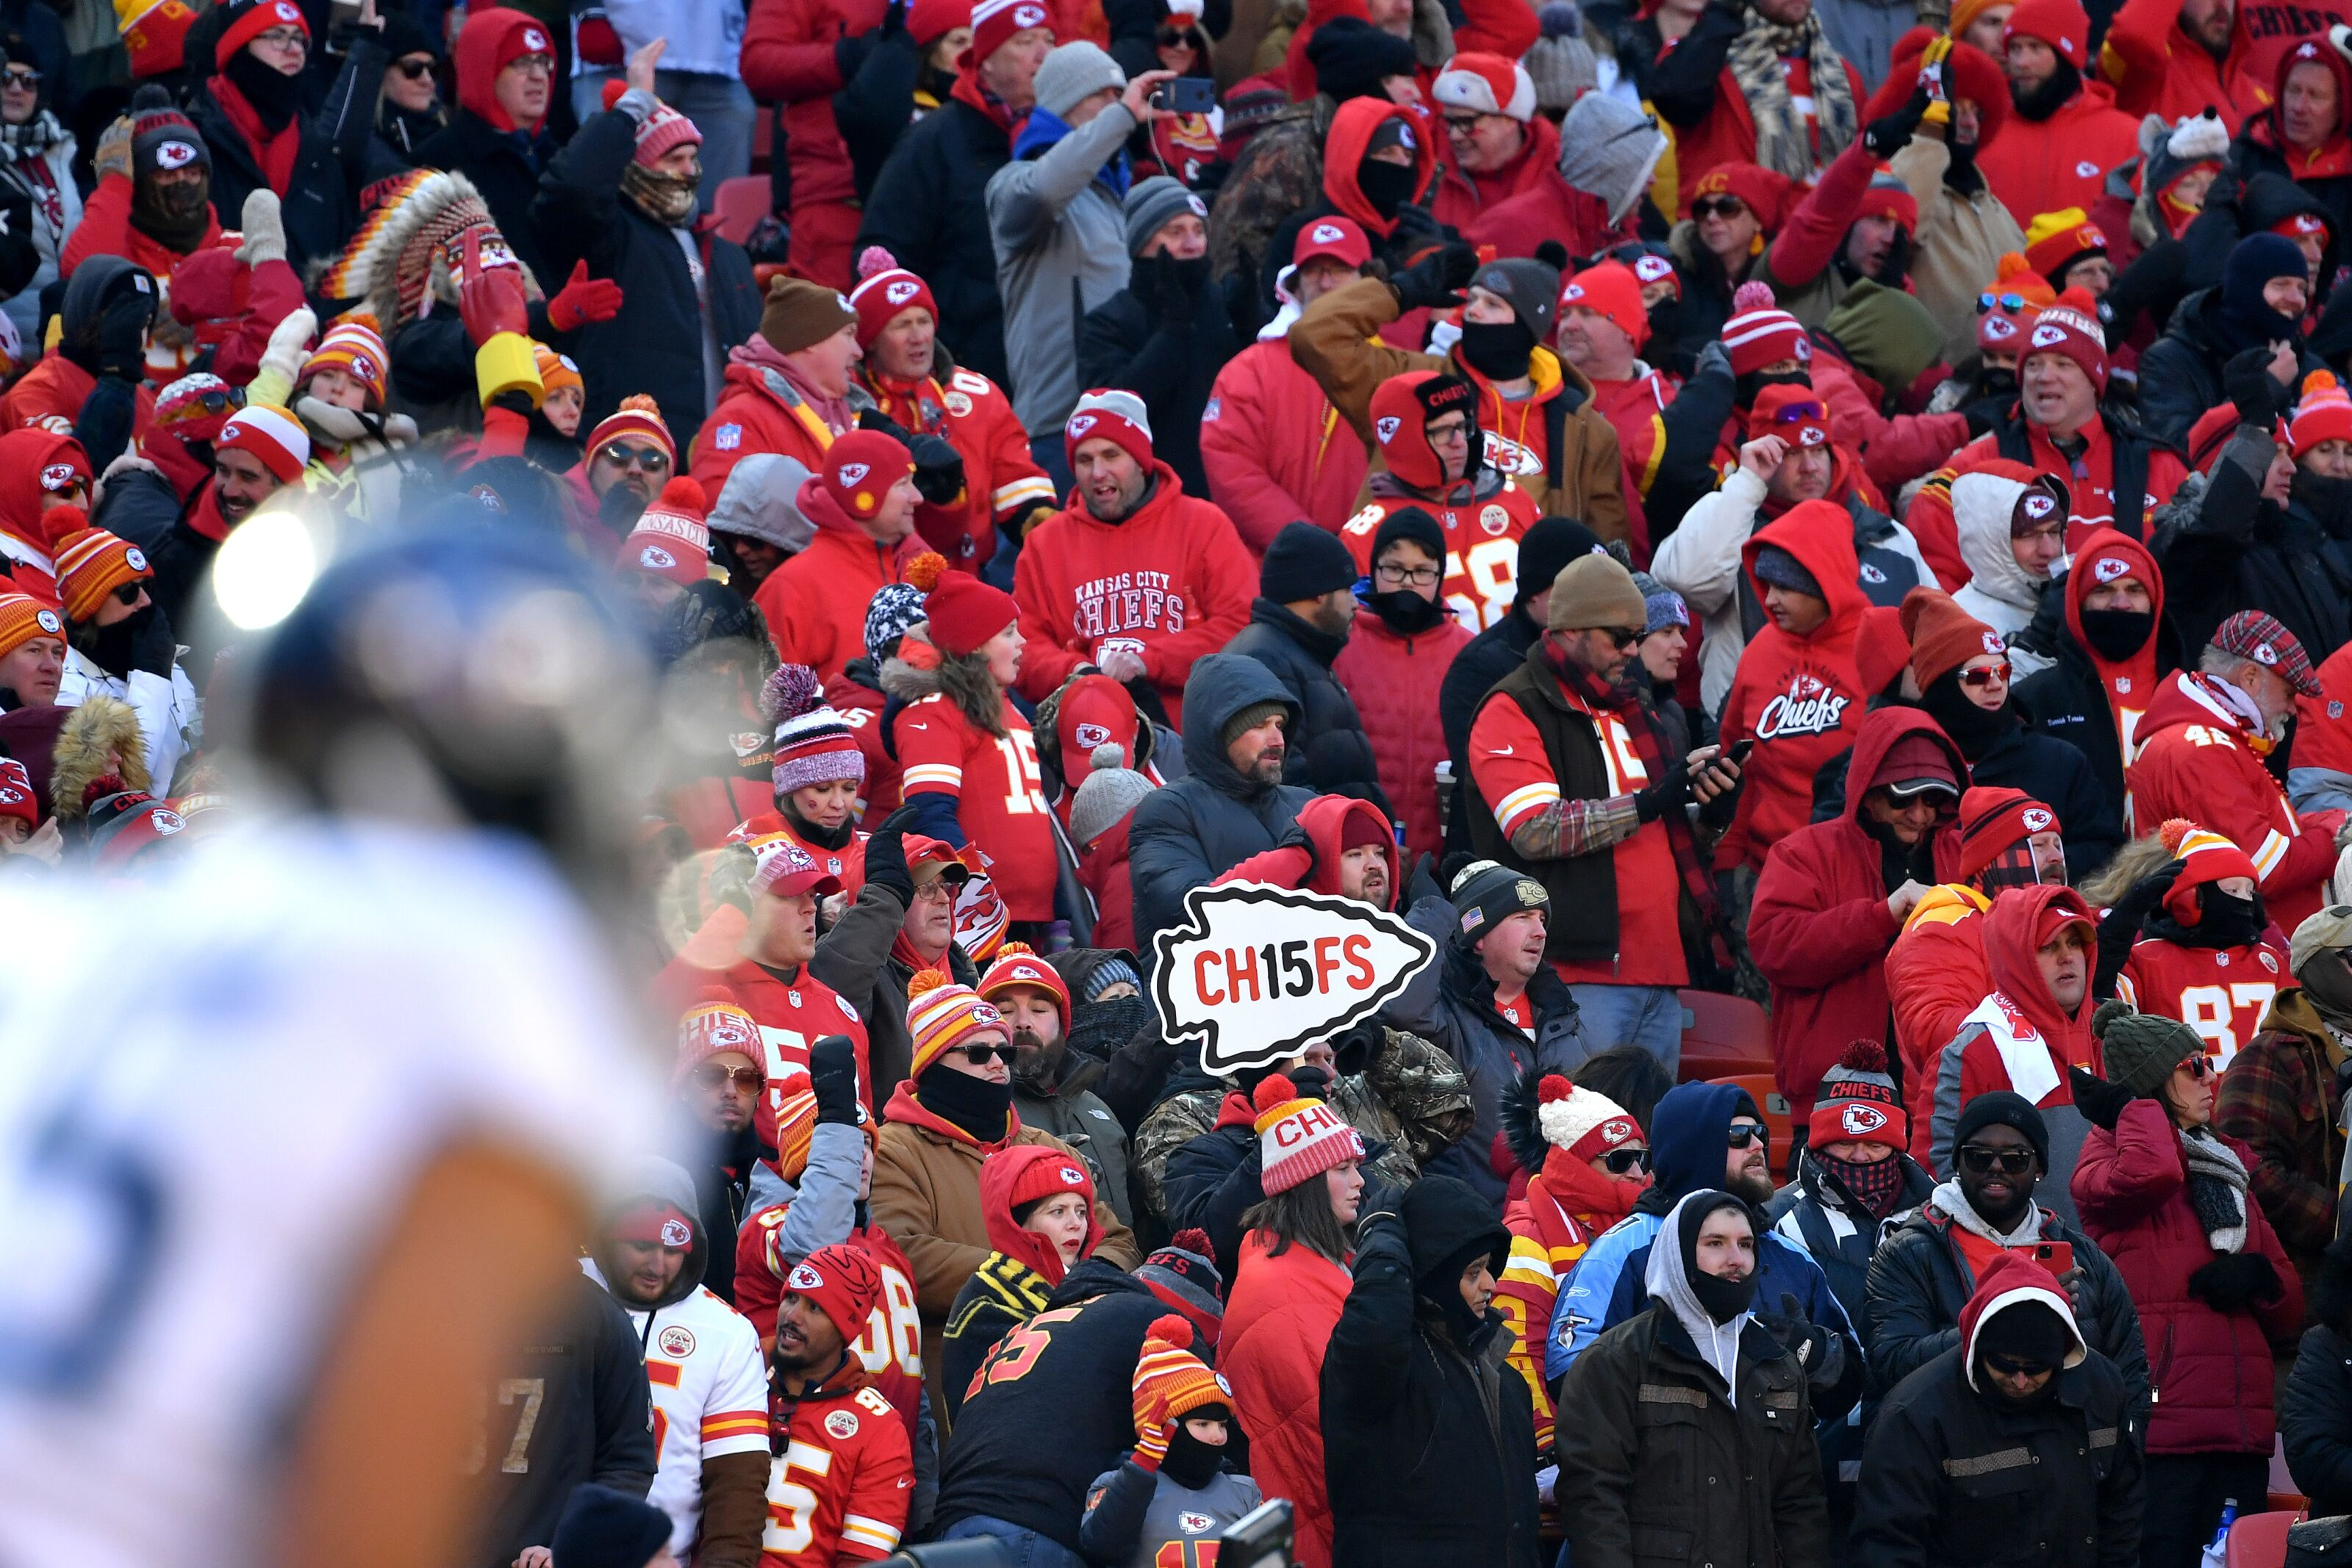 The Chiefs are going to the Super Bowl and fans are going bonkers